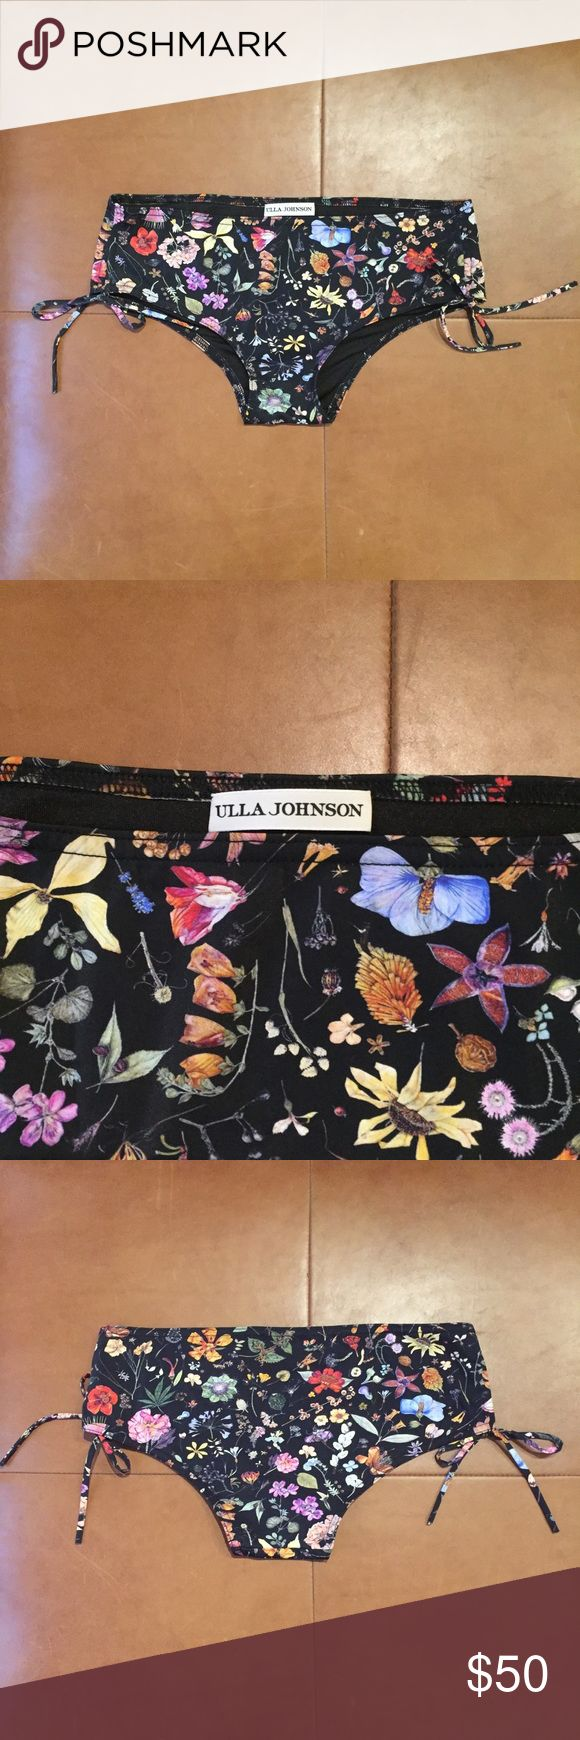 """ULLA JOHNSON Boho Black Floral Bikini Bottoms-Sz P *New without Tags-Never Worn*   Gorgeous boho chic black floral bikini bottoms by Ulla Johnson! Size Petite. Full cut. String detail. 14.5"""" across. 8.5"""" from band to crotch. 72% Polymide 28% Elastane. Dry clean only. Perfect condition, Zero flaws! Ulla Johnson Swim Bikinis"""